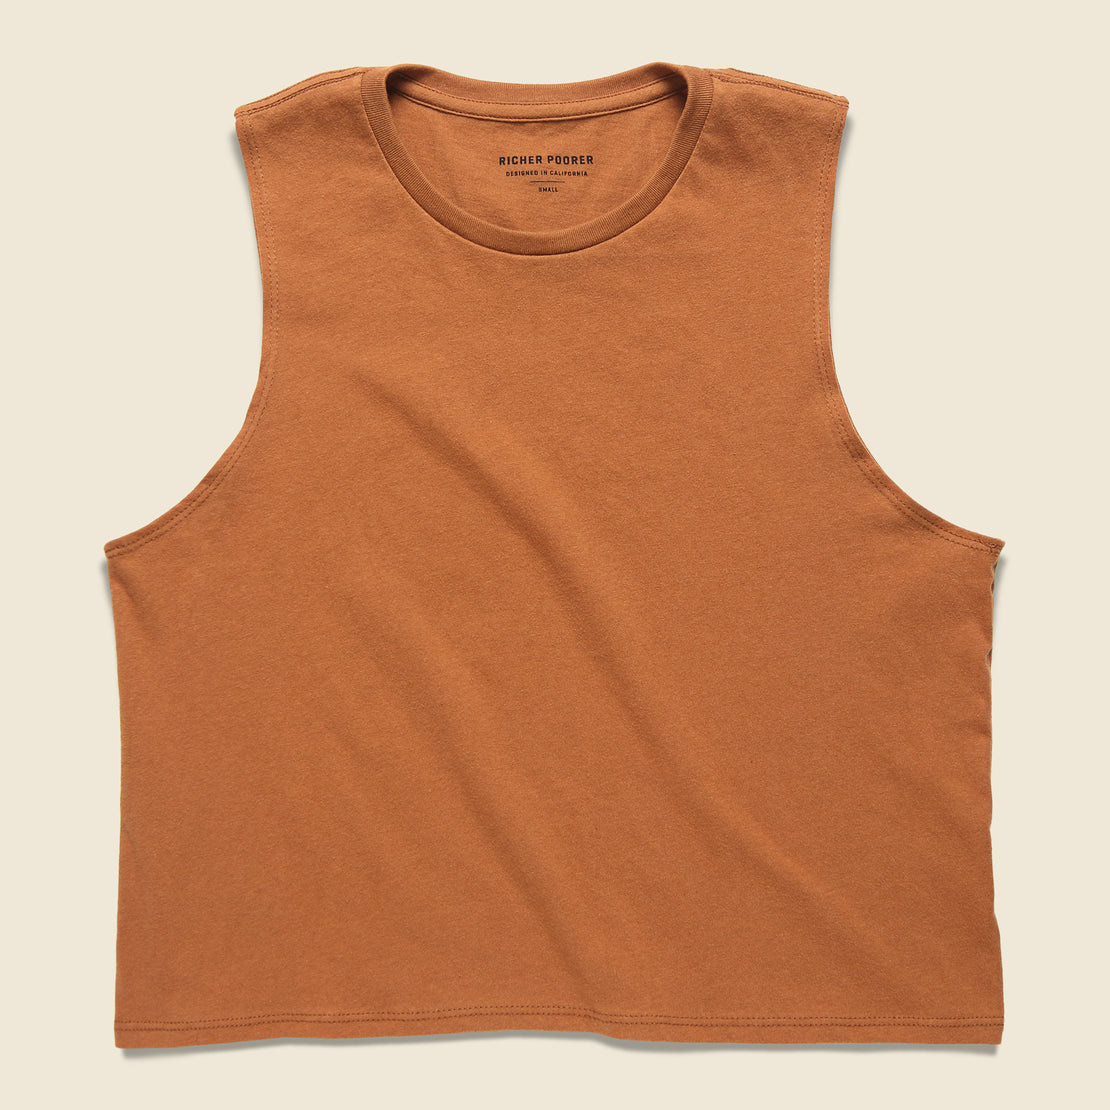 Richer Poorer Cropped Muscle Tank - Tobacco